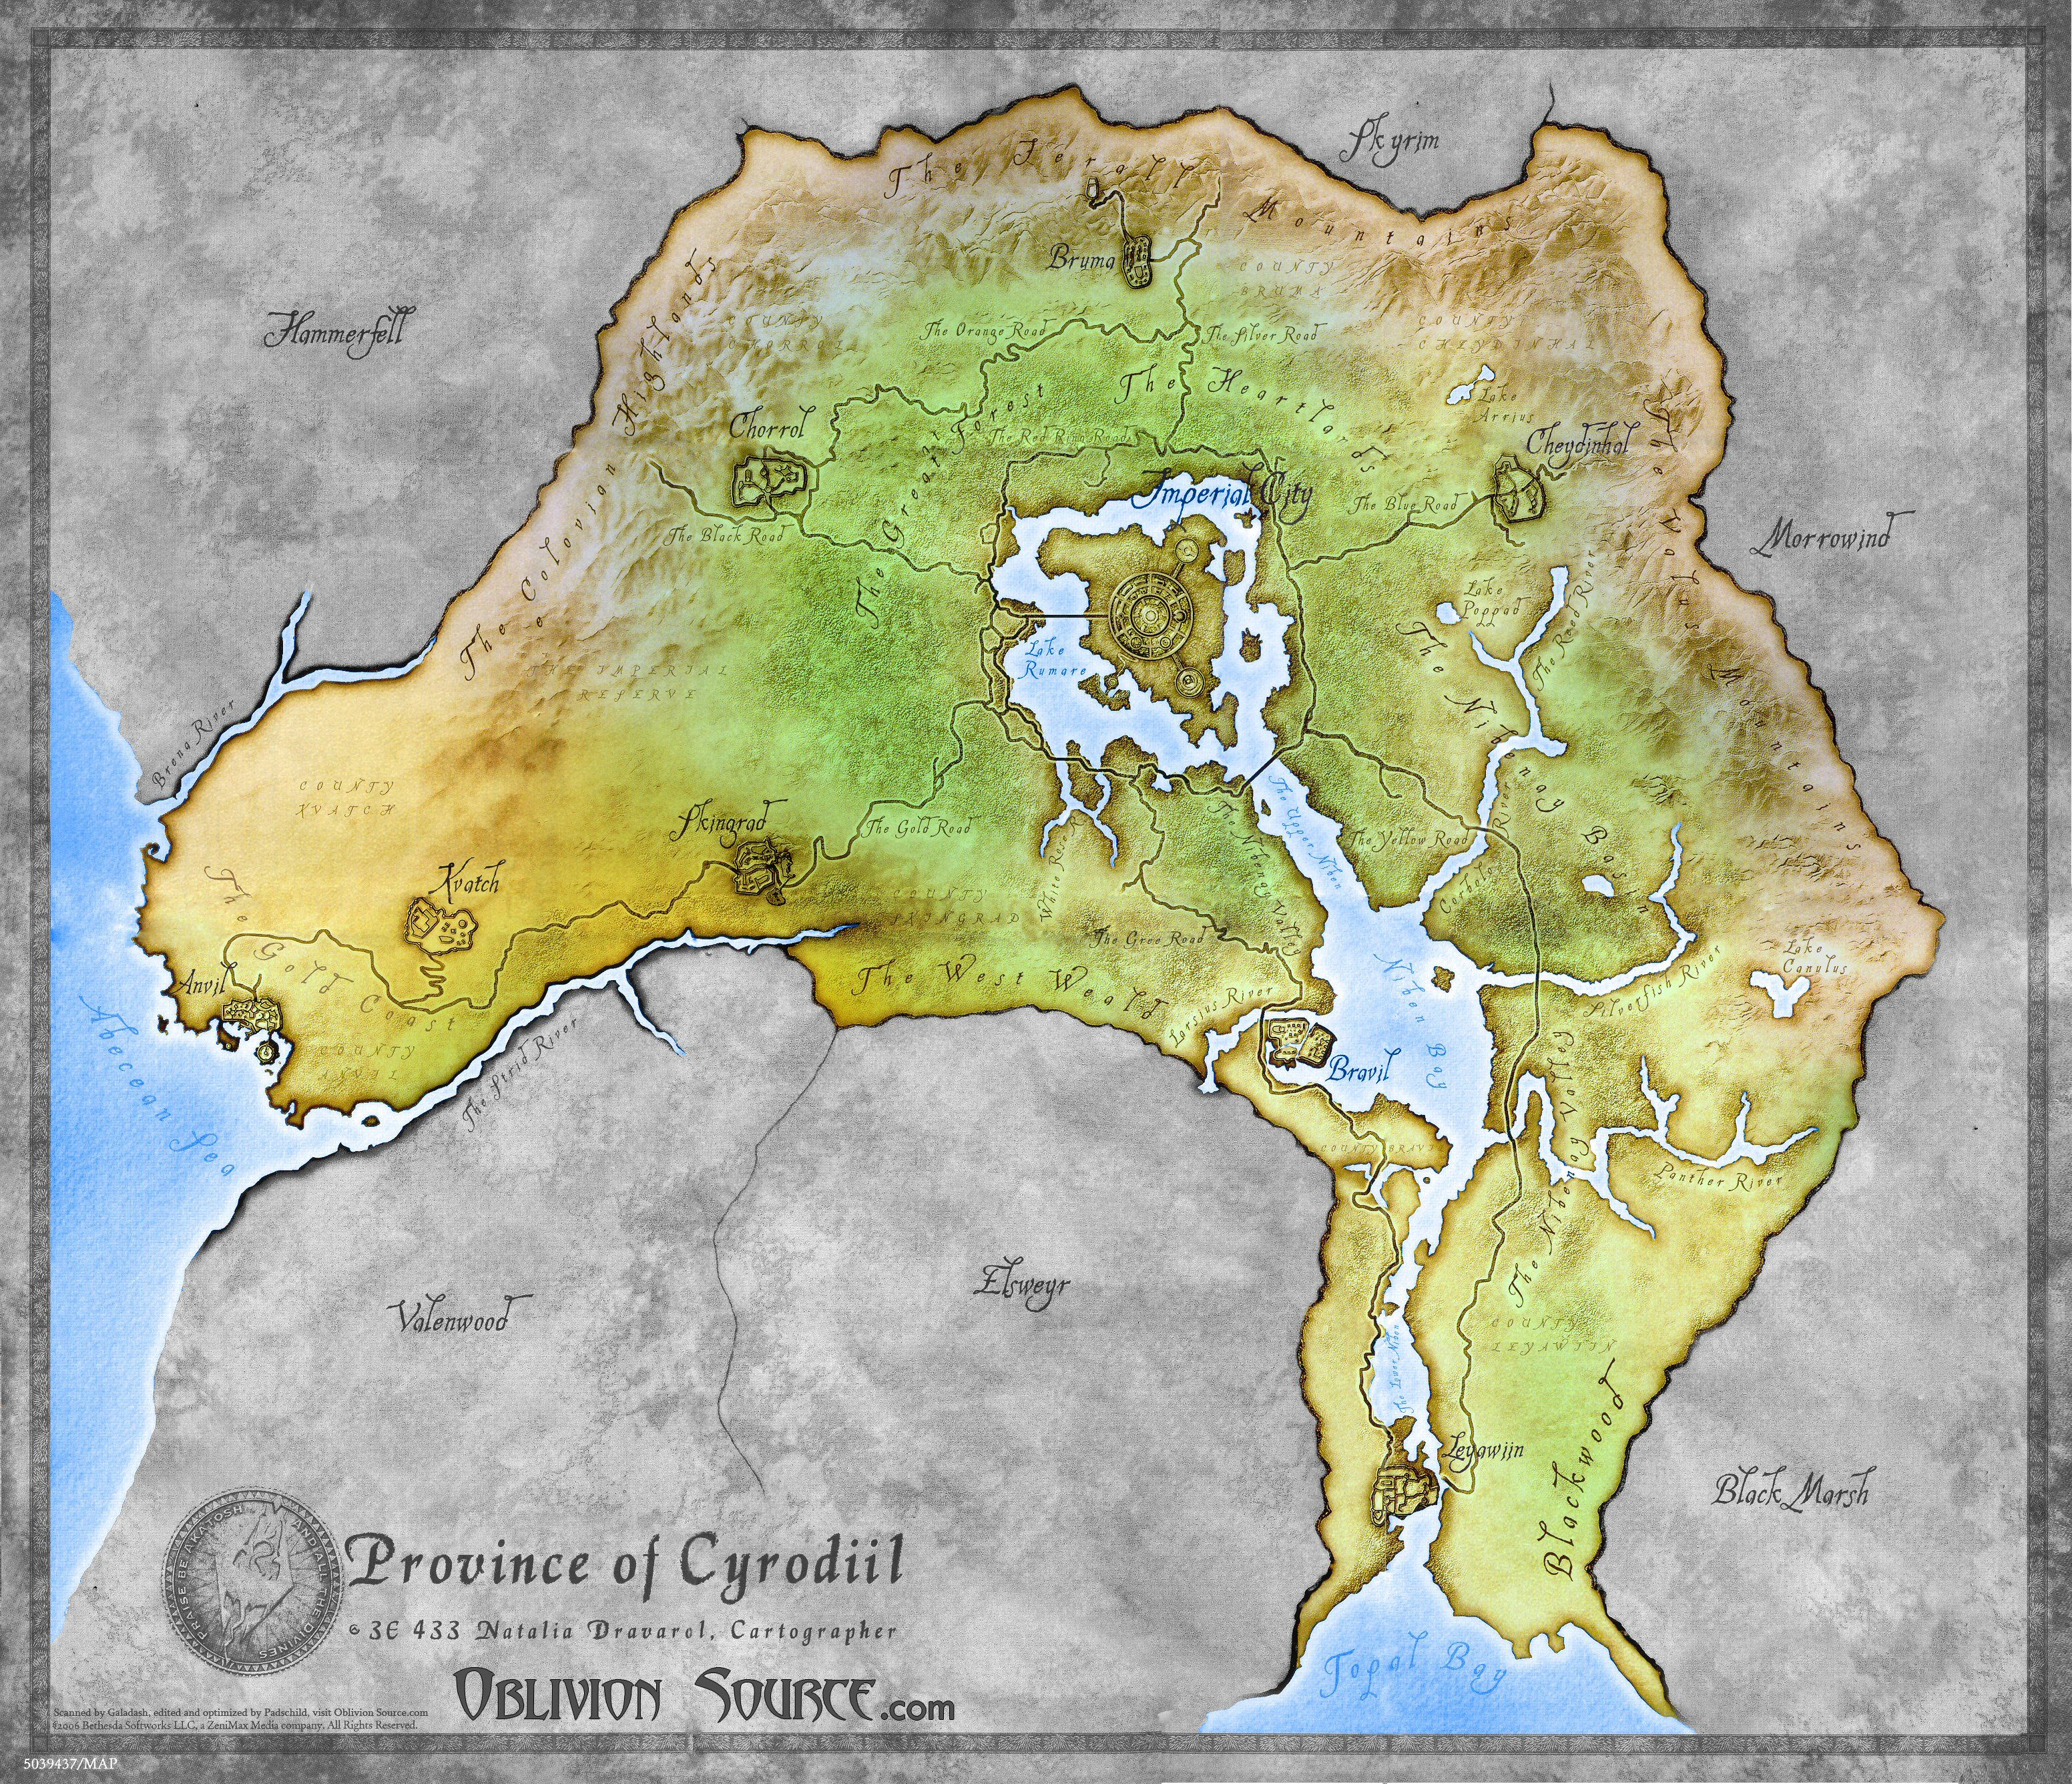 Oblivion - Province of Cyrodiil map. I Skyrim, but I think ... on map of vault 101, map of summerset isles, map of elder scrolls, map of western new guinea, map of valenwood, map of morrowind, map of china provinces, map of daggerfall, map of vvardenfell, map of hammerfell, map of black marsh, map of play, map of creation, map of castle grayskull, map of tamriel, map of skyrim, map of vana'diel, map of elsweyr, map of solstheim, map of high rock,